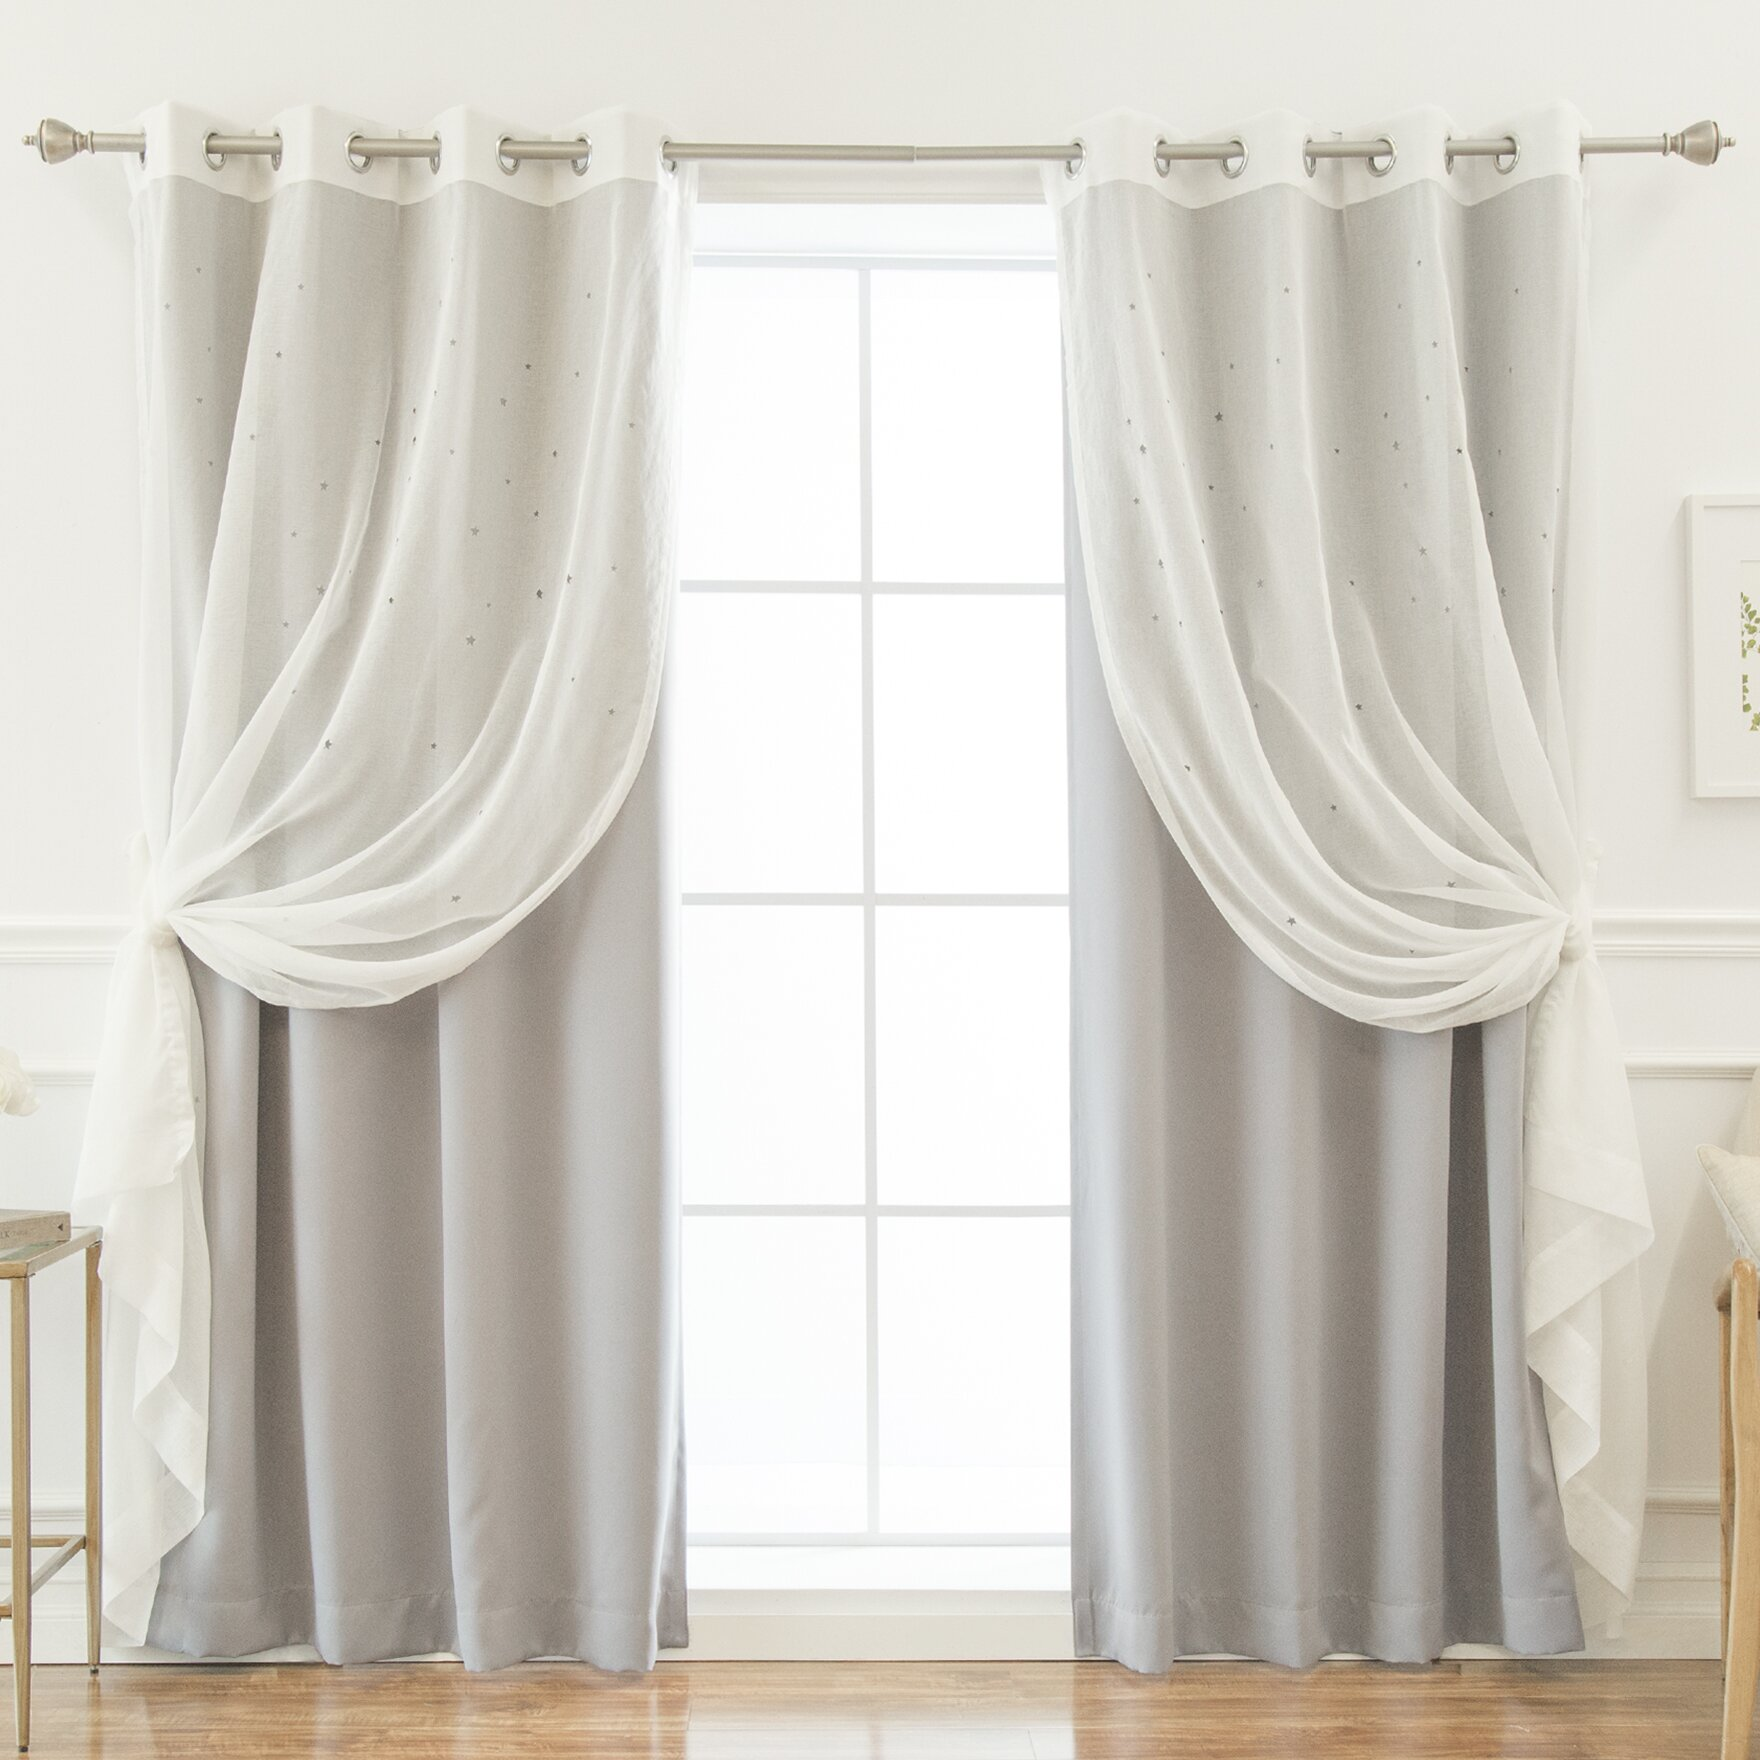 Darby Home Co Bedwell Sheer Star Cut Out Solid Blackout